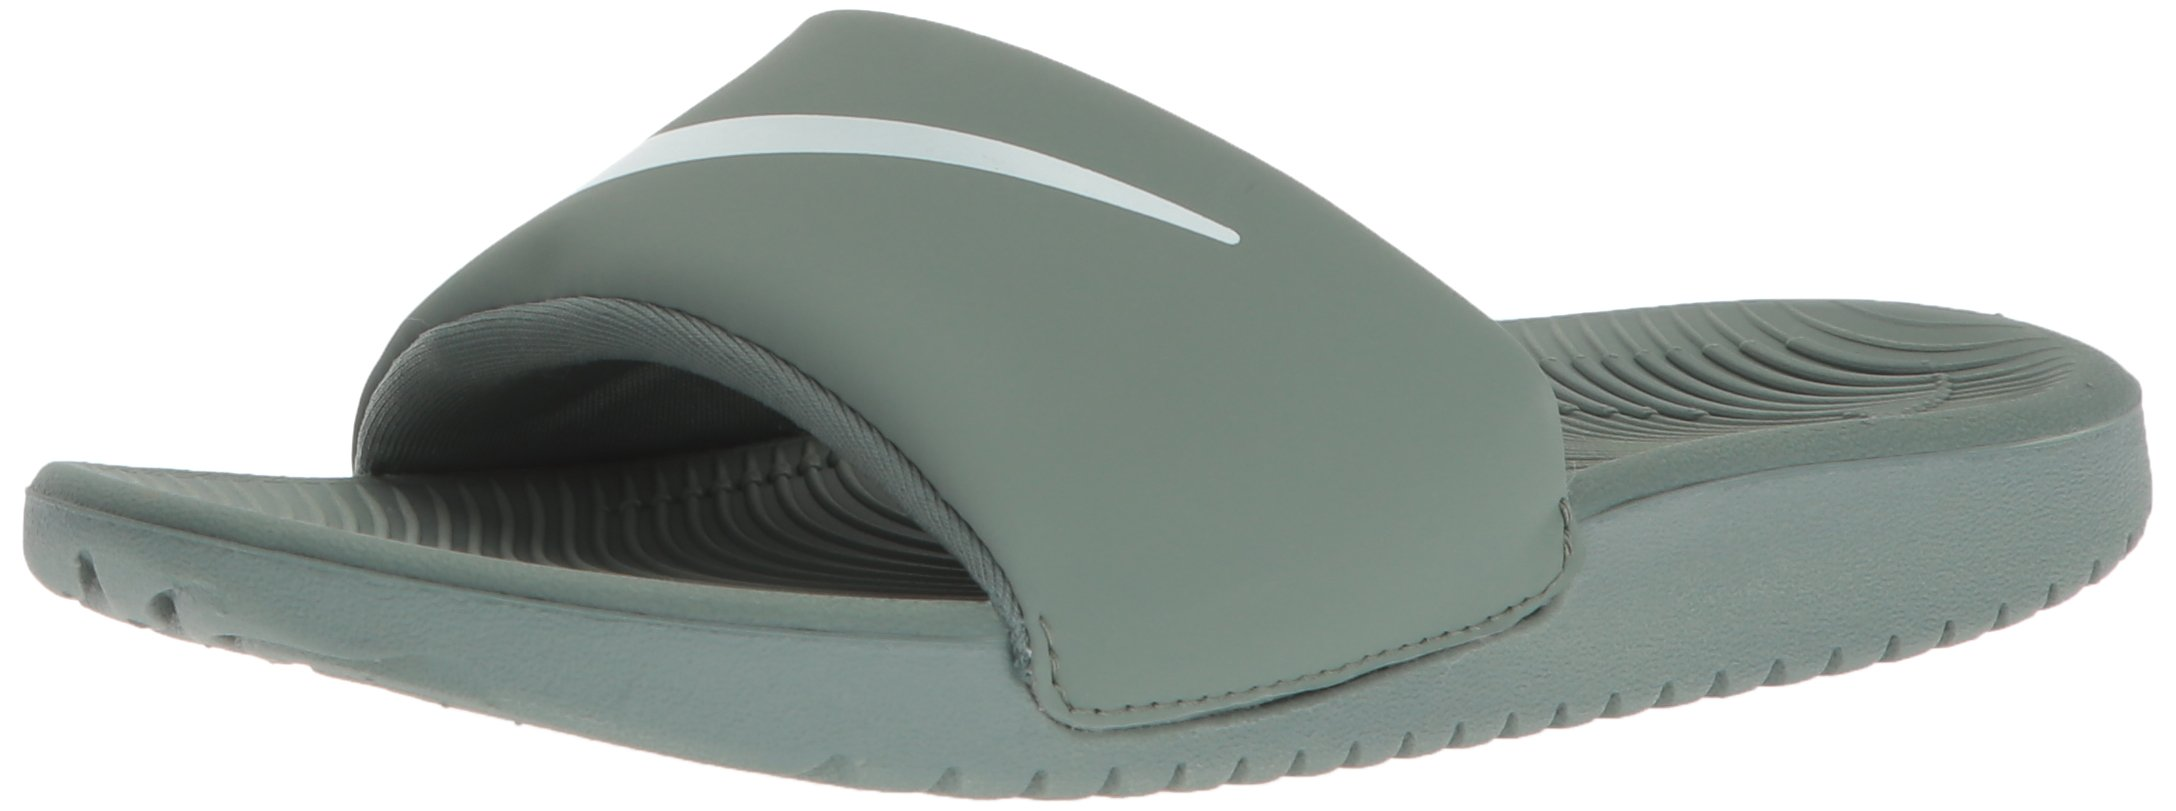 Nike Boys' Kawa Slide (GS/PS) Athletic Sandal, Clay Green/Barely Grey, 6 M US Big Kid